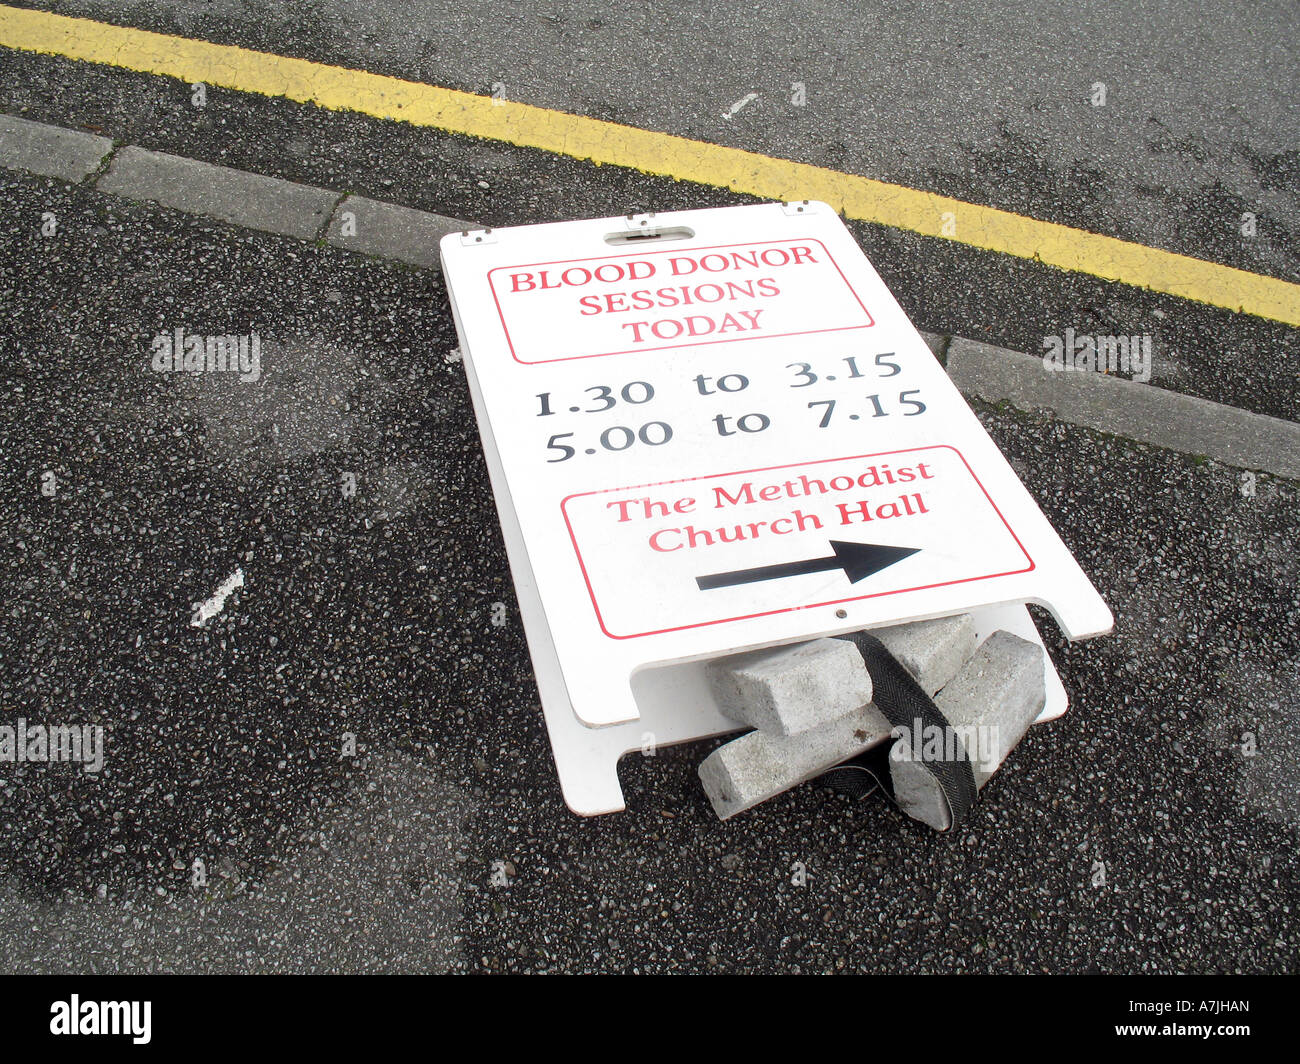 Blood donor session sign lying in road Cornwall UK - Stock Image